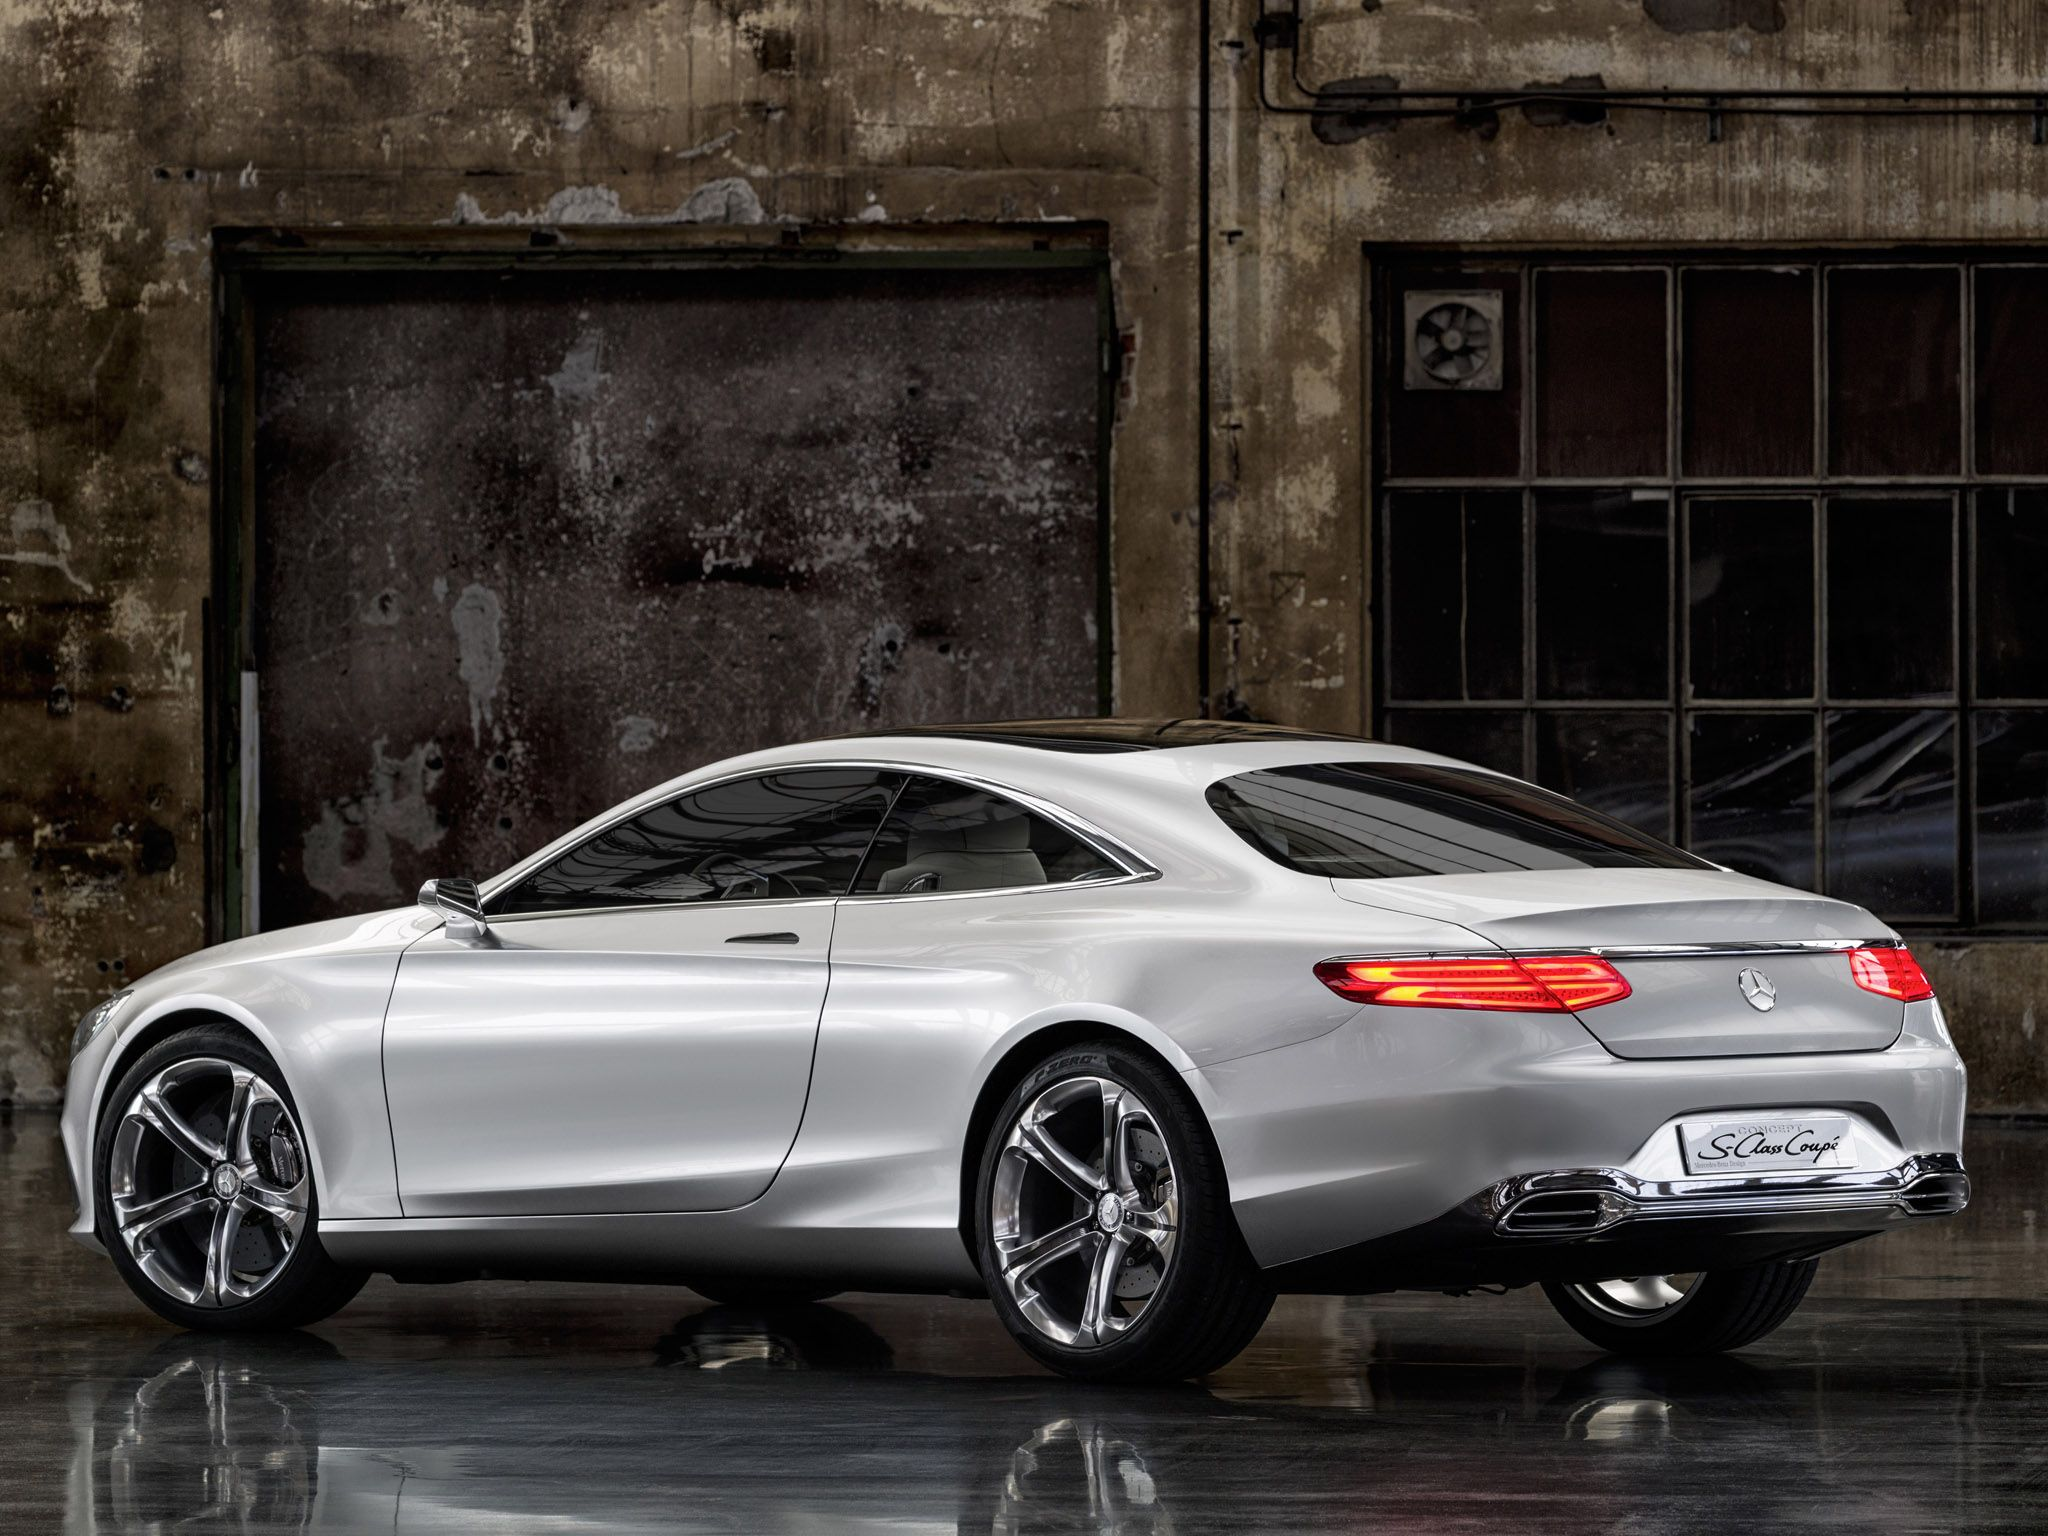 Mercedes Benz SClass Coupe Concept h wallpaper x